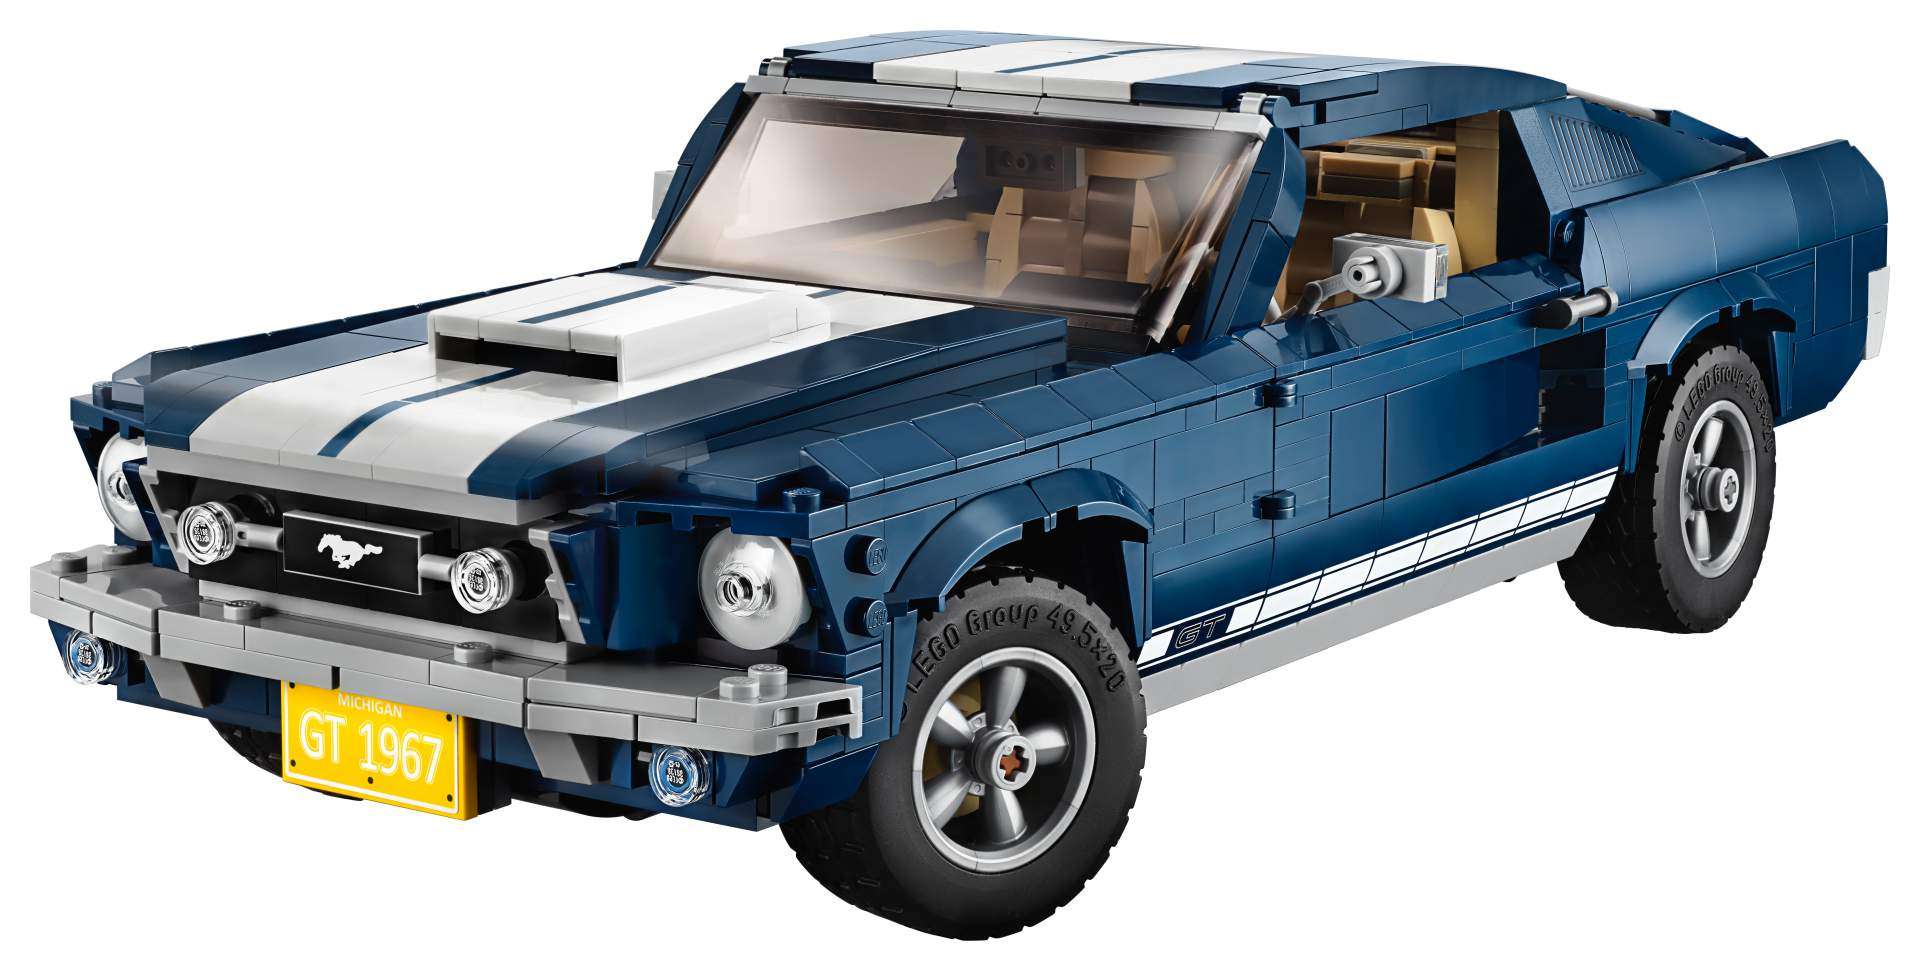 Ford Mustang GT 1967 Lego Creator Set (1)